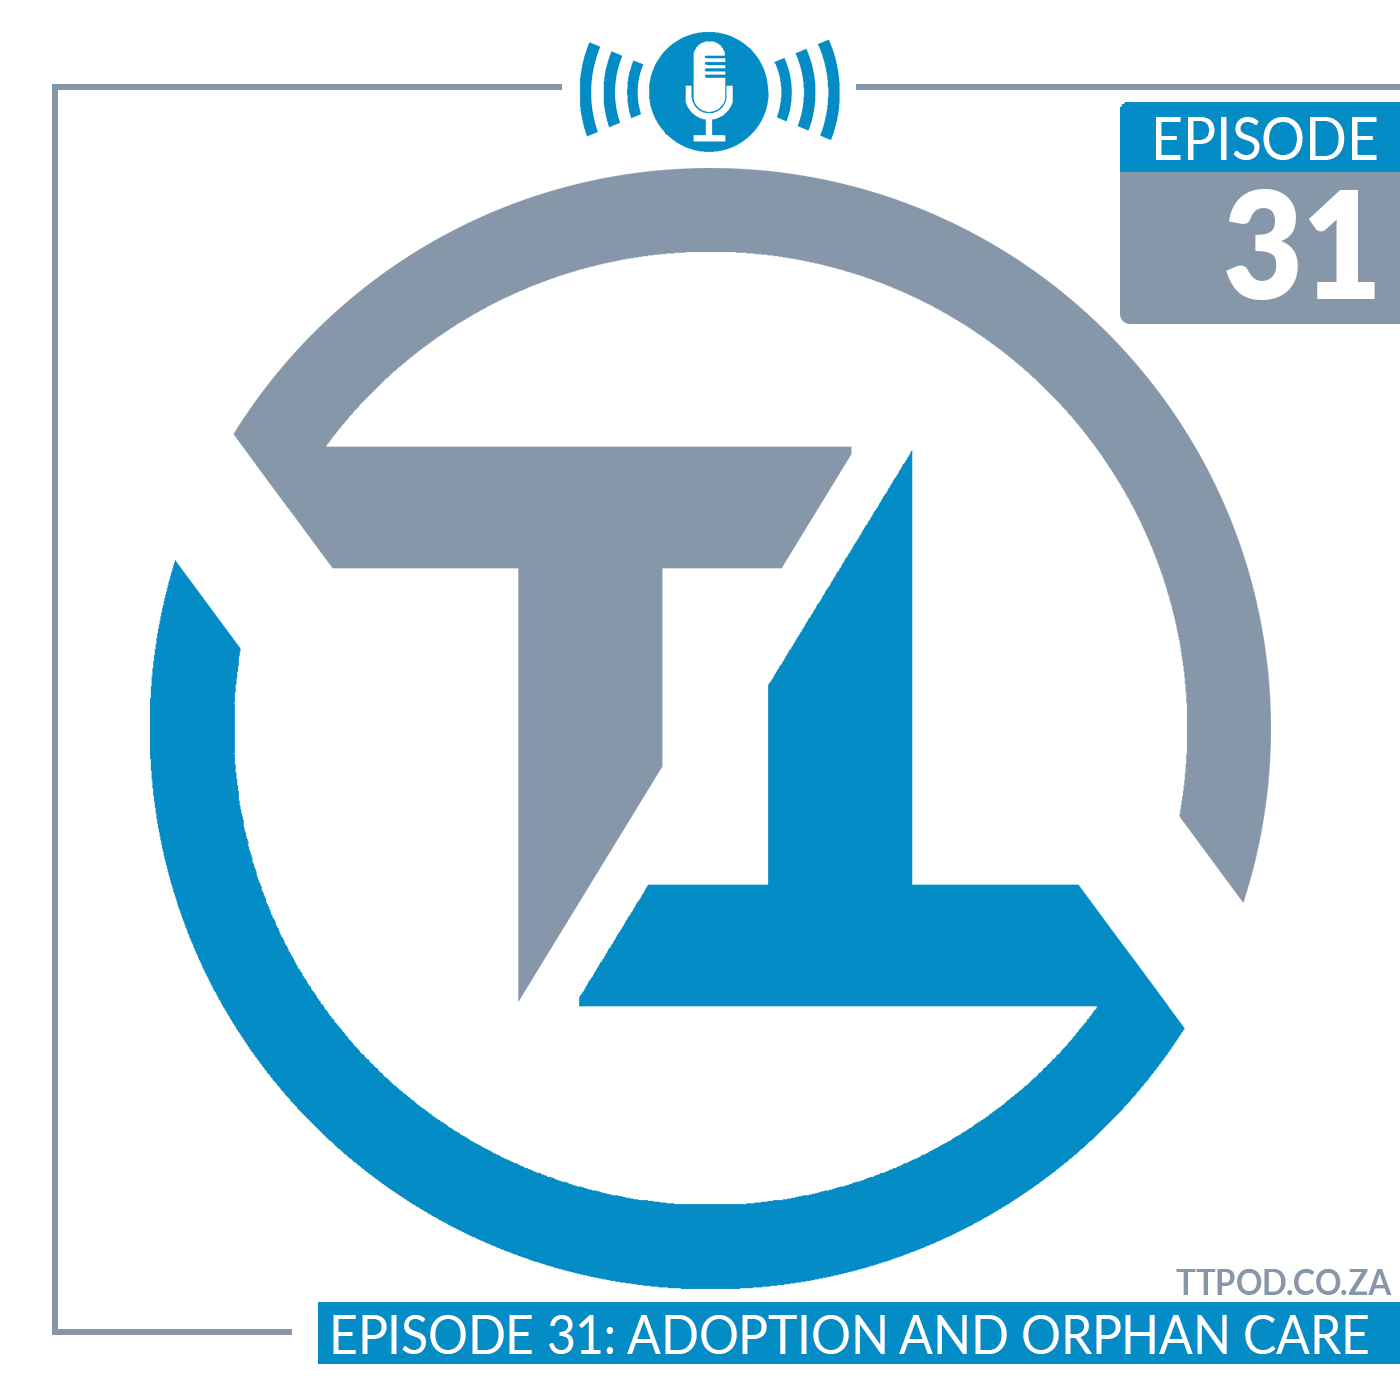 Episode 31: Adoption and Orphan Care